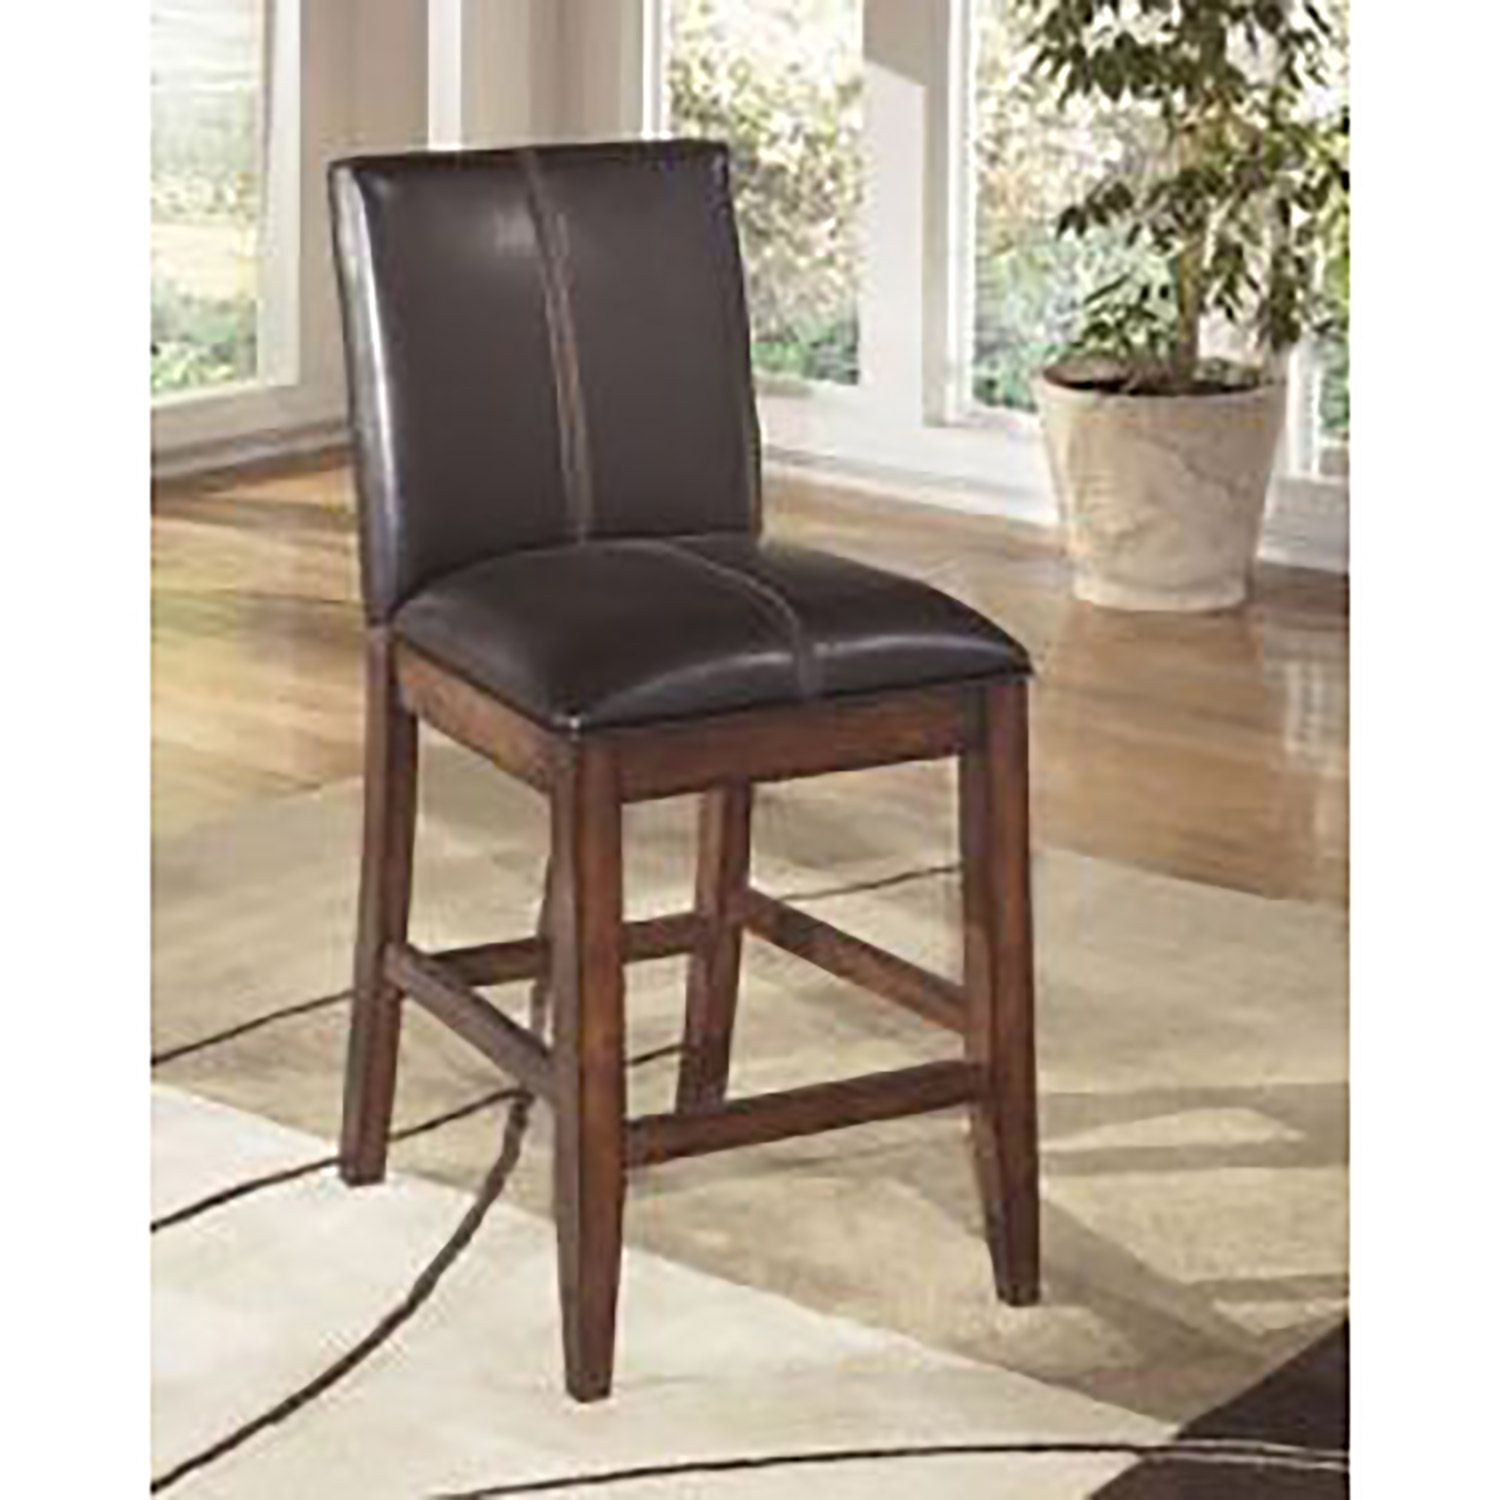 Larchmont Upholstered Barstool D D442 224 Ashley Furniture